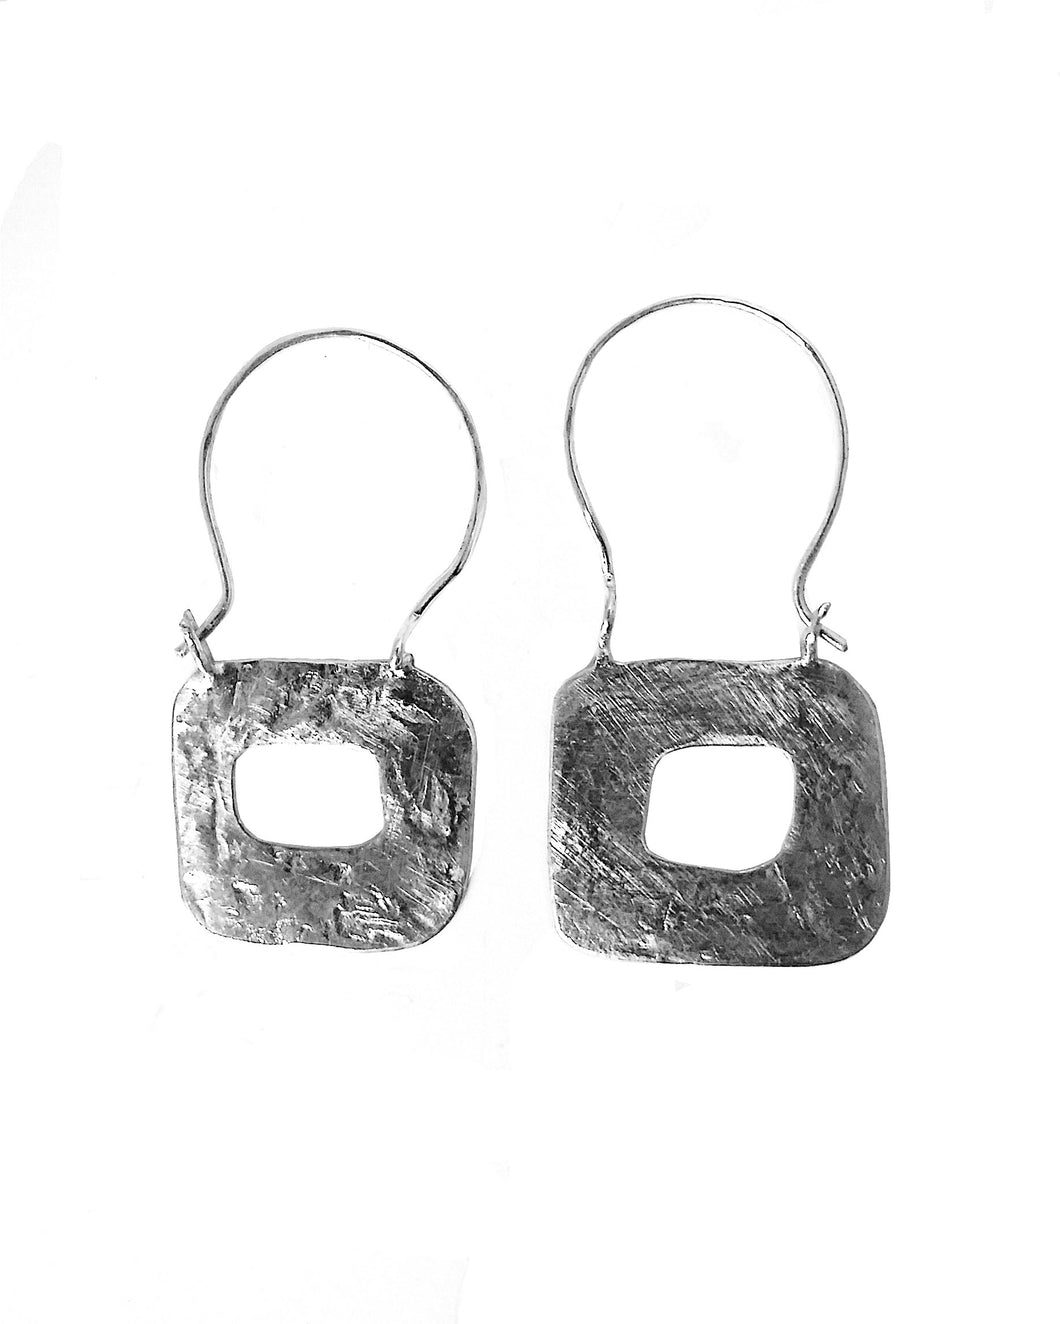 Early Expedition Earrings